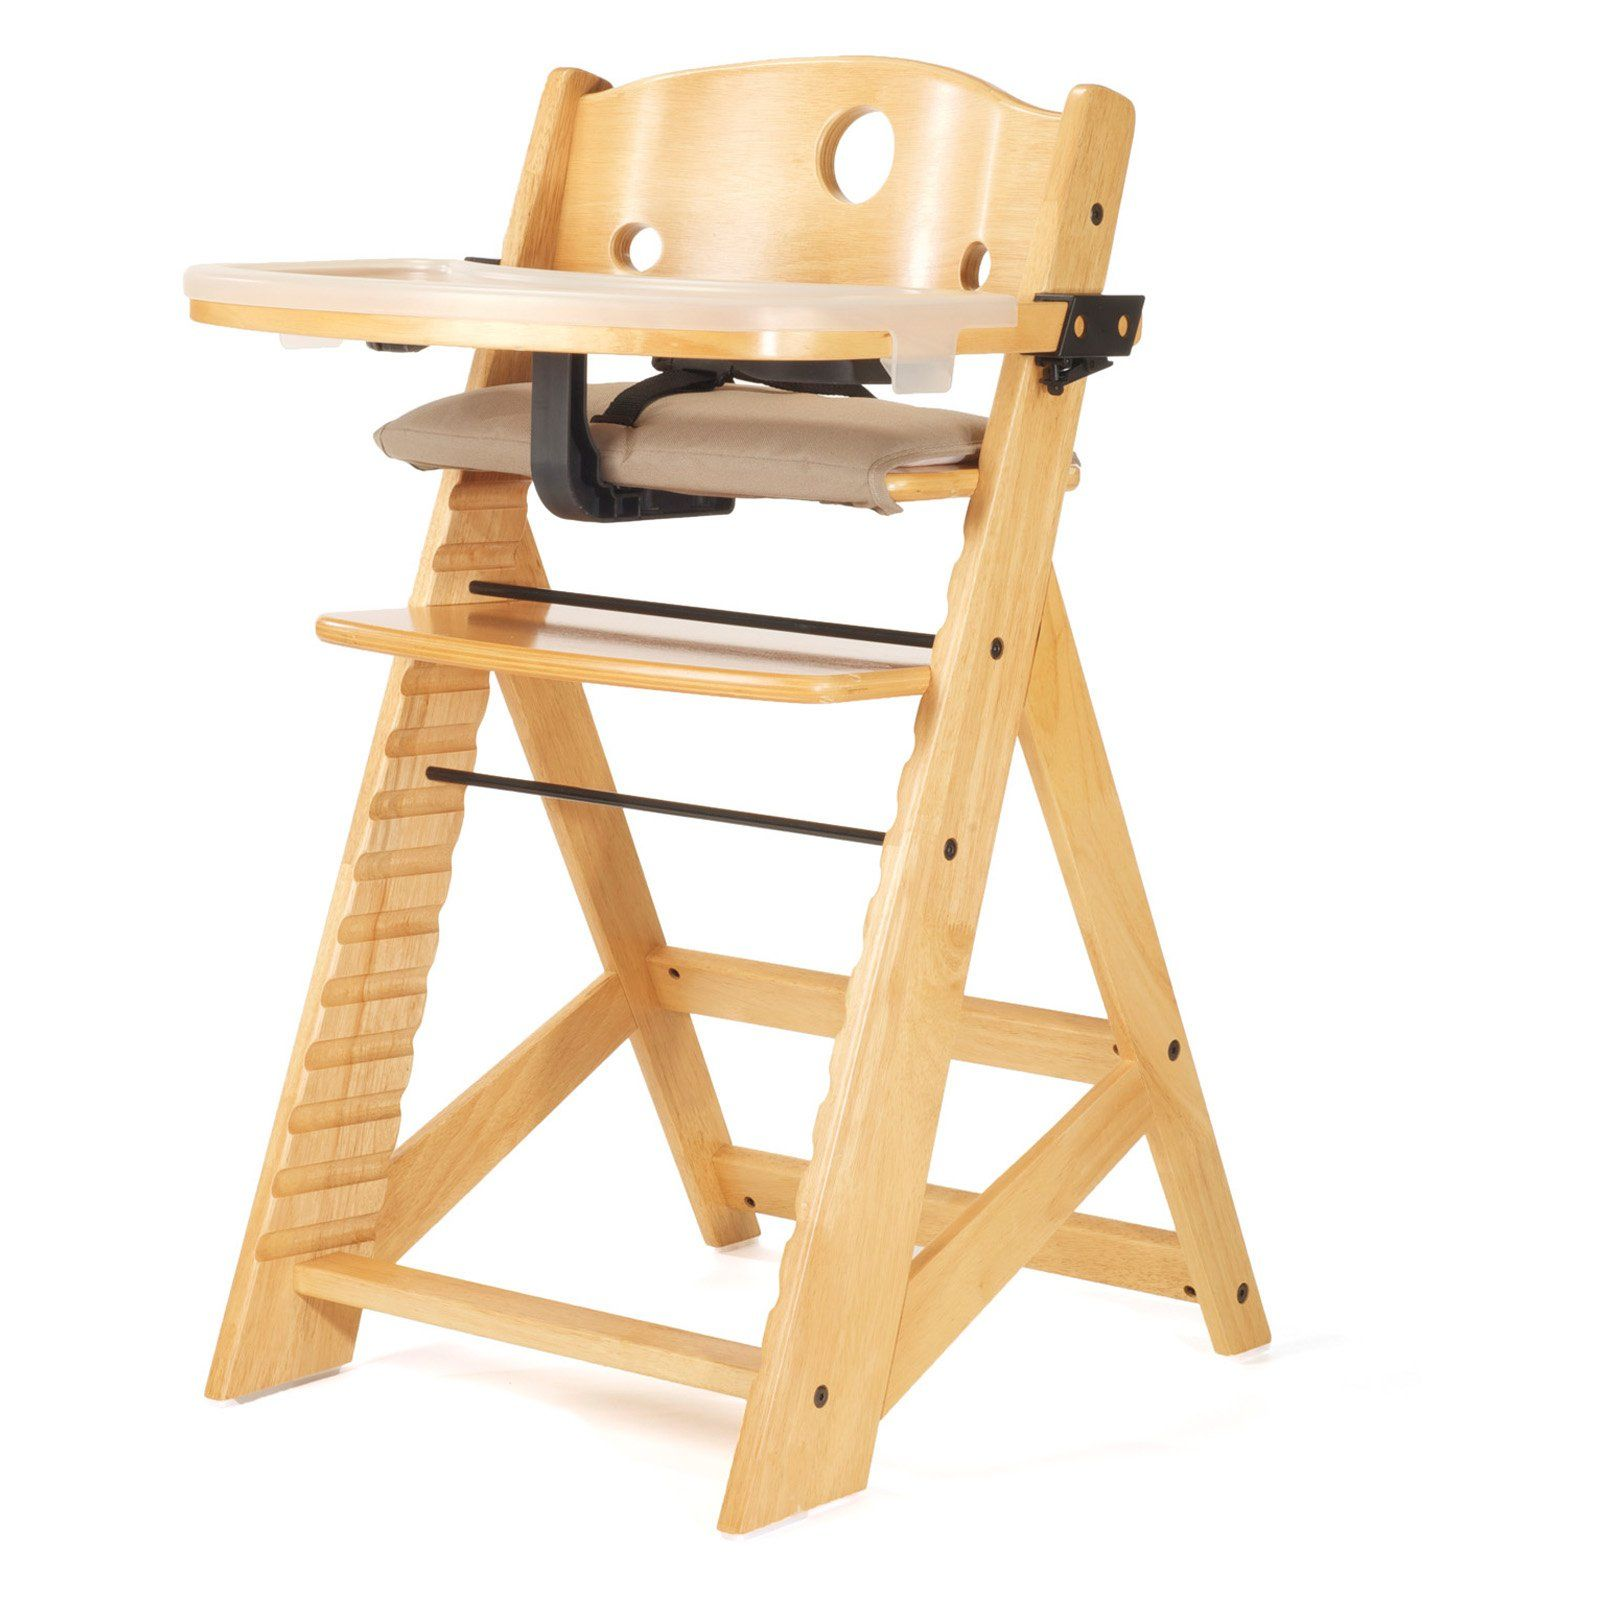 Excellent Keekaroo Height Right High Chair With Tray Natural Beatyapartments Chair Design Images Beatyapartmentscom